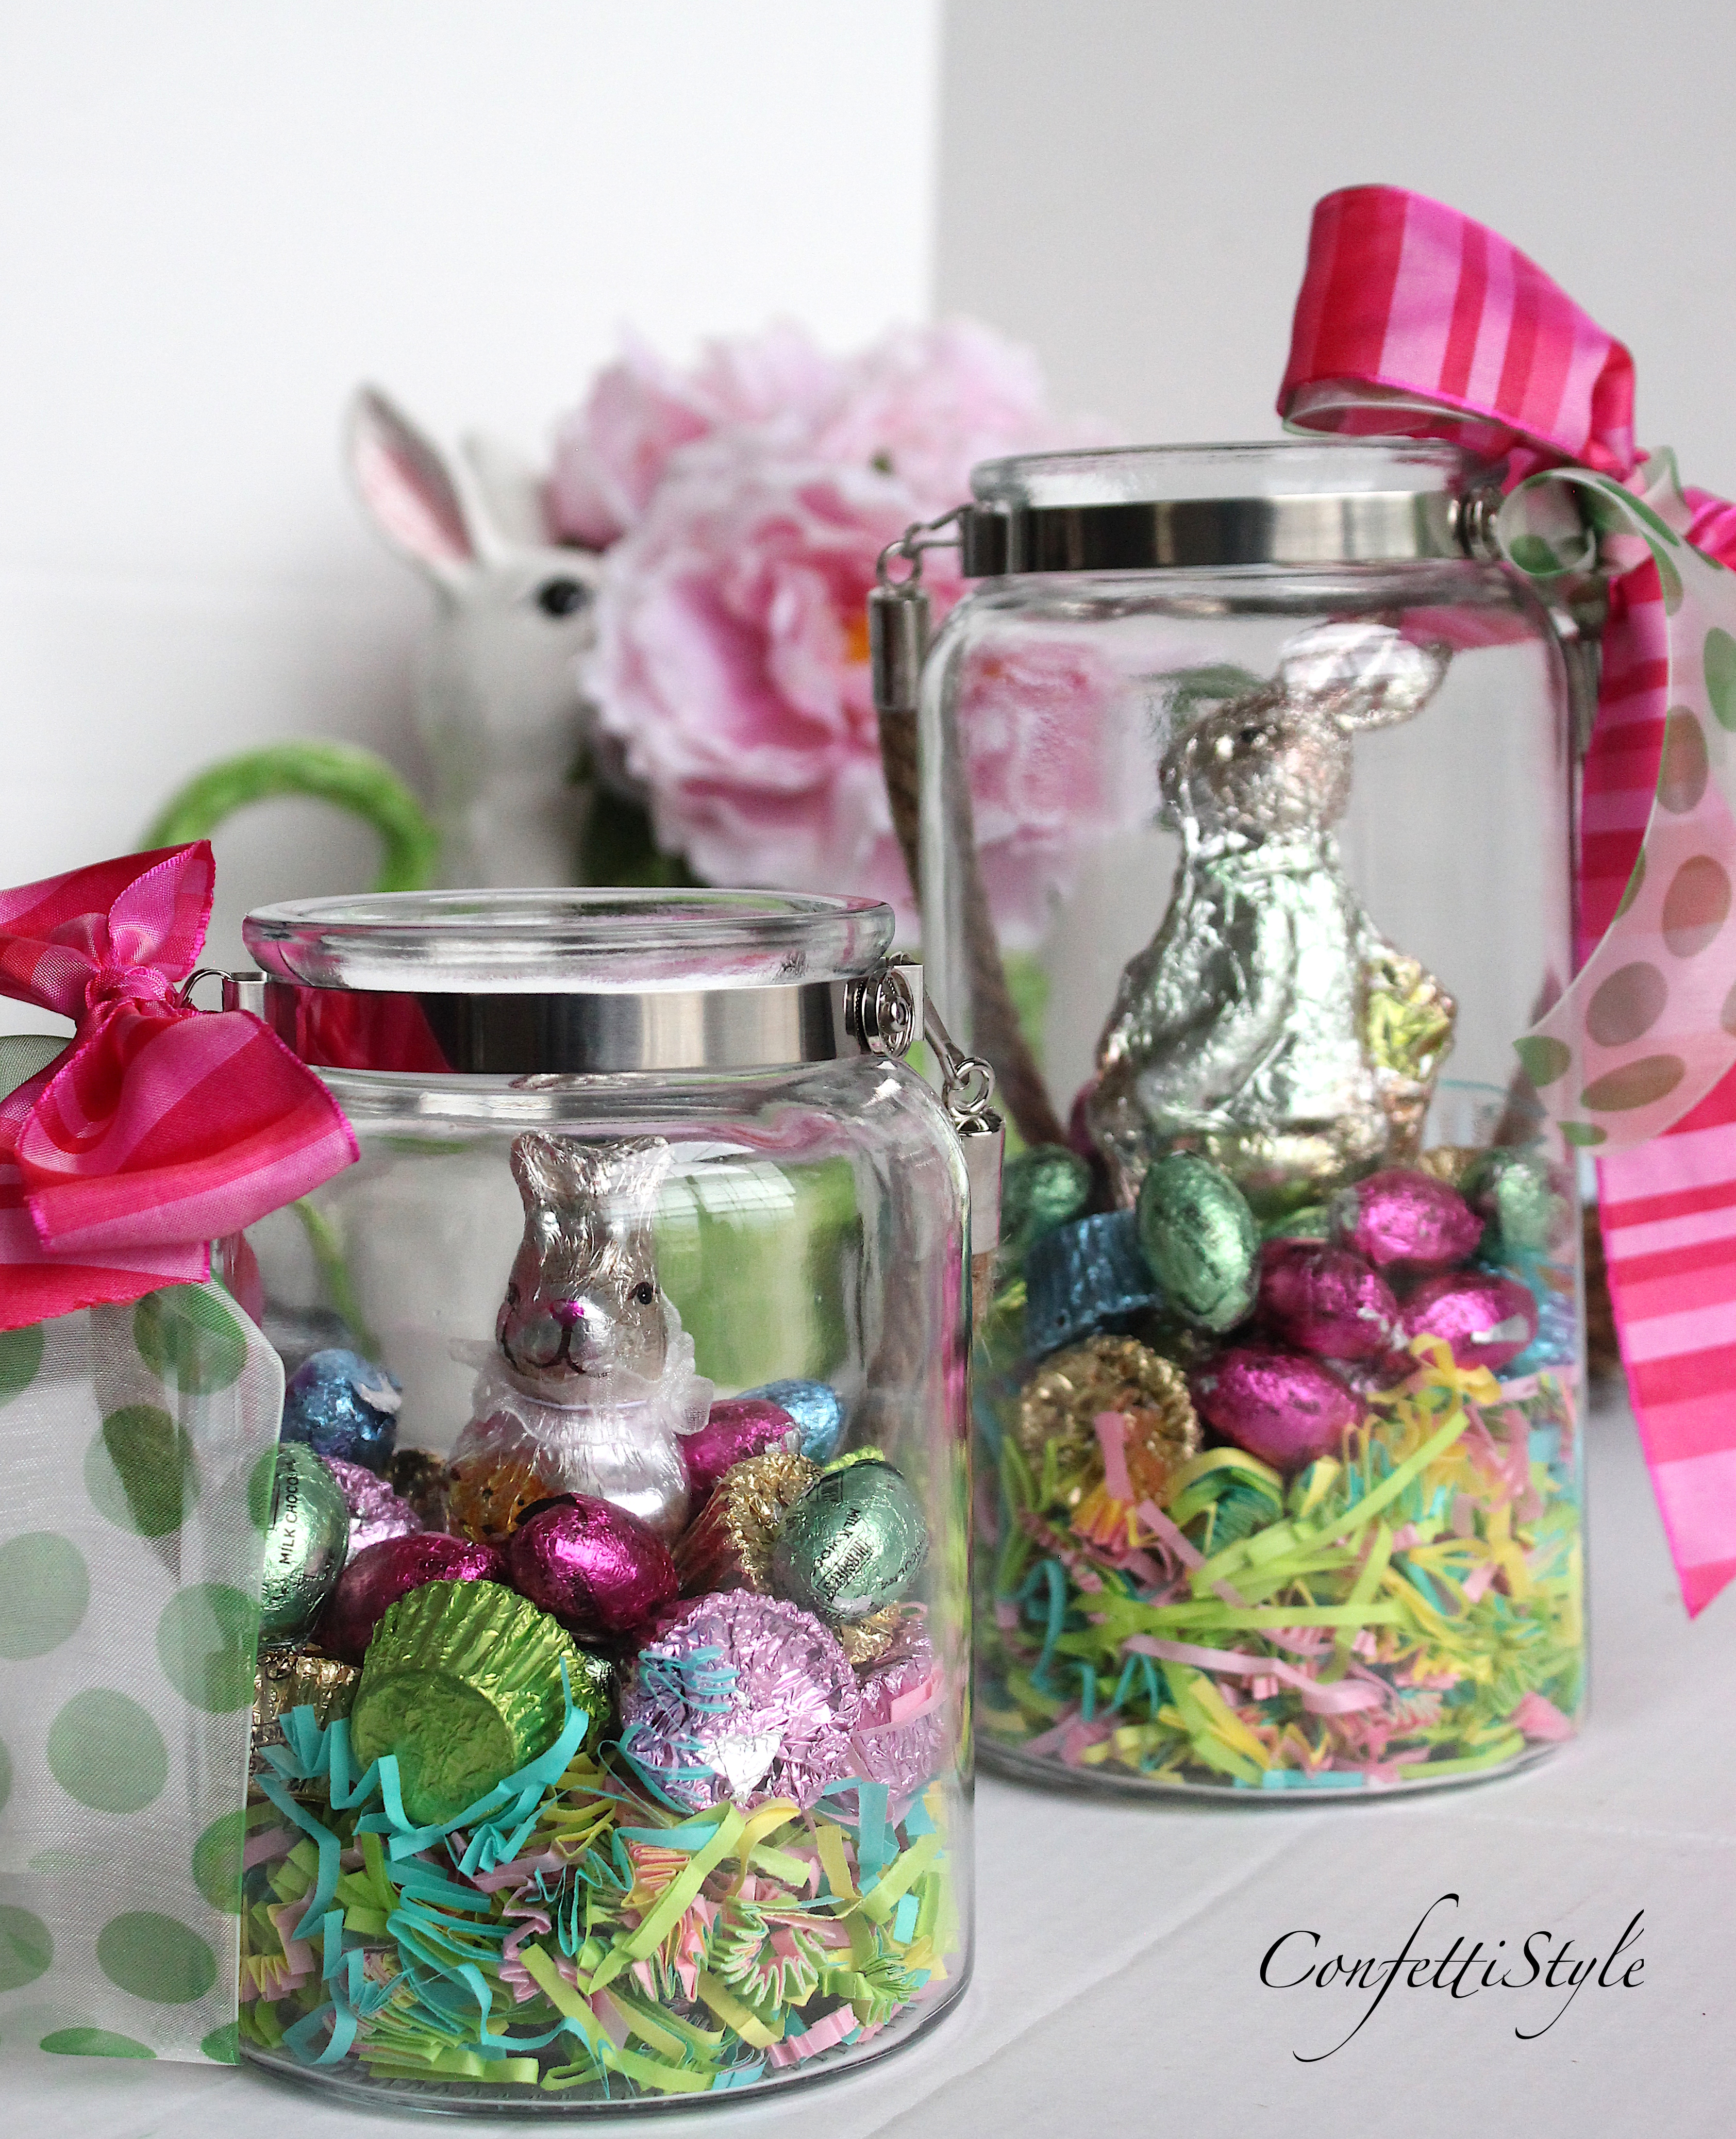 Diy easter candy jars easter gift idea confettistyle diy easter candy jar by confettistyle negle Image collections